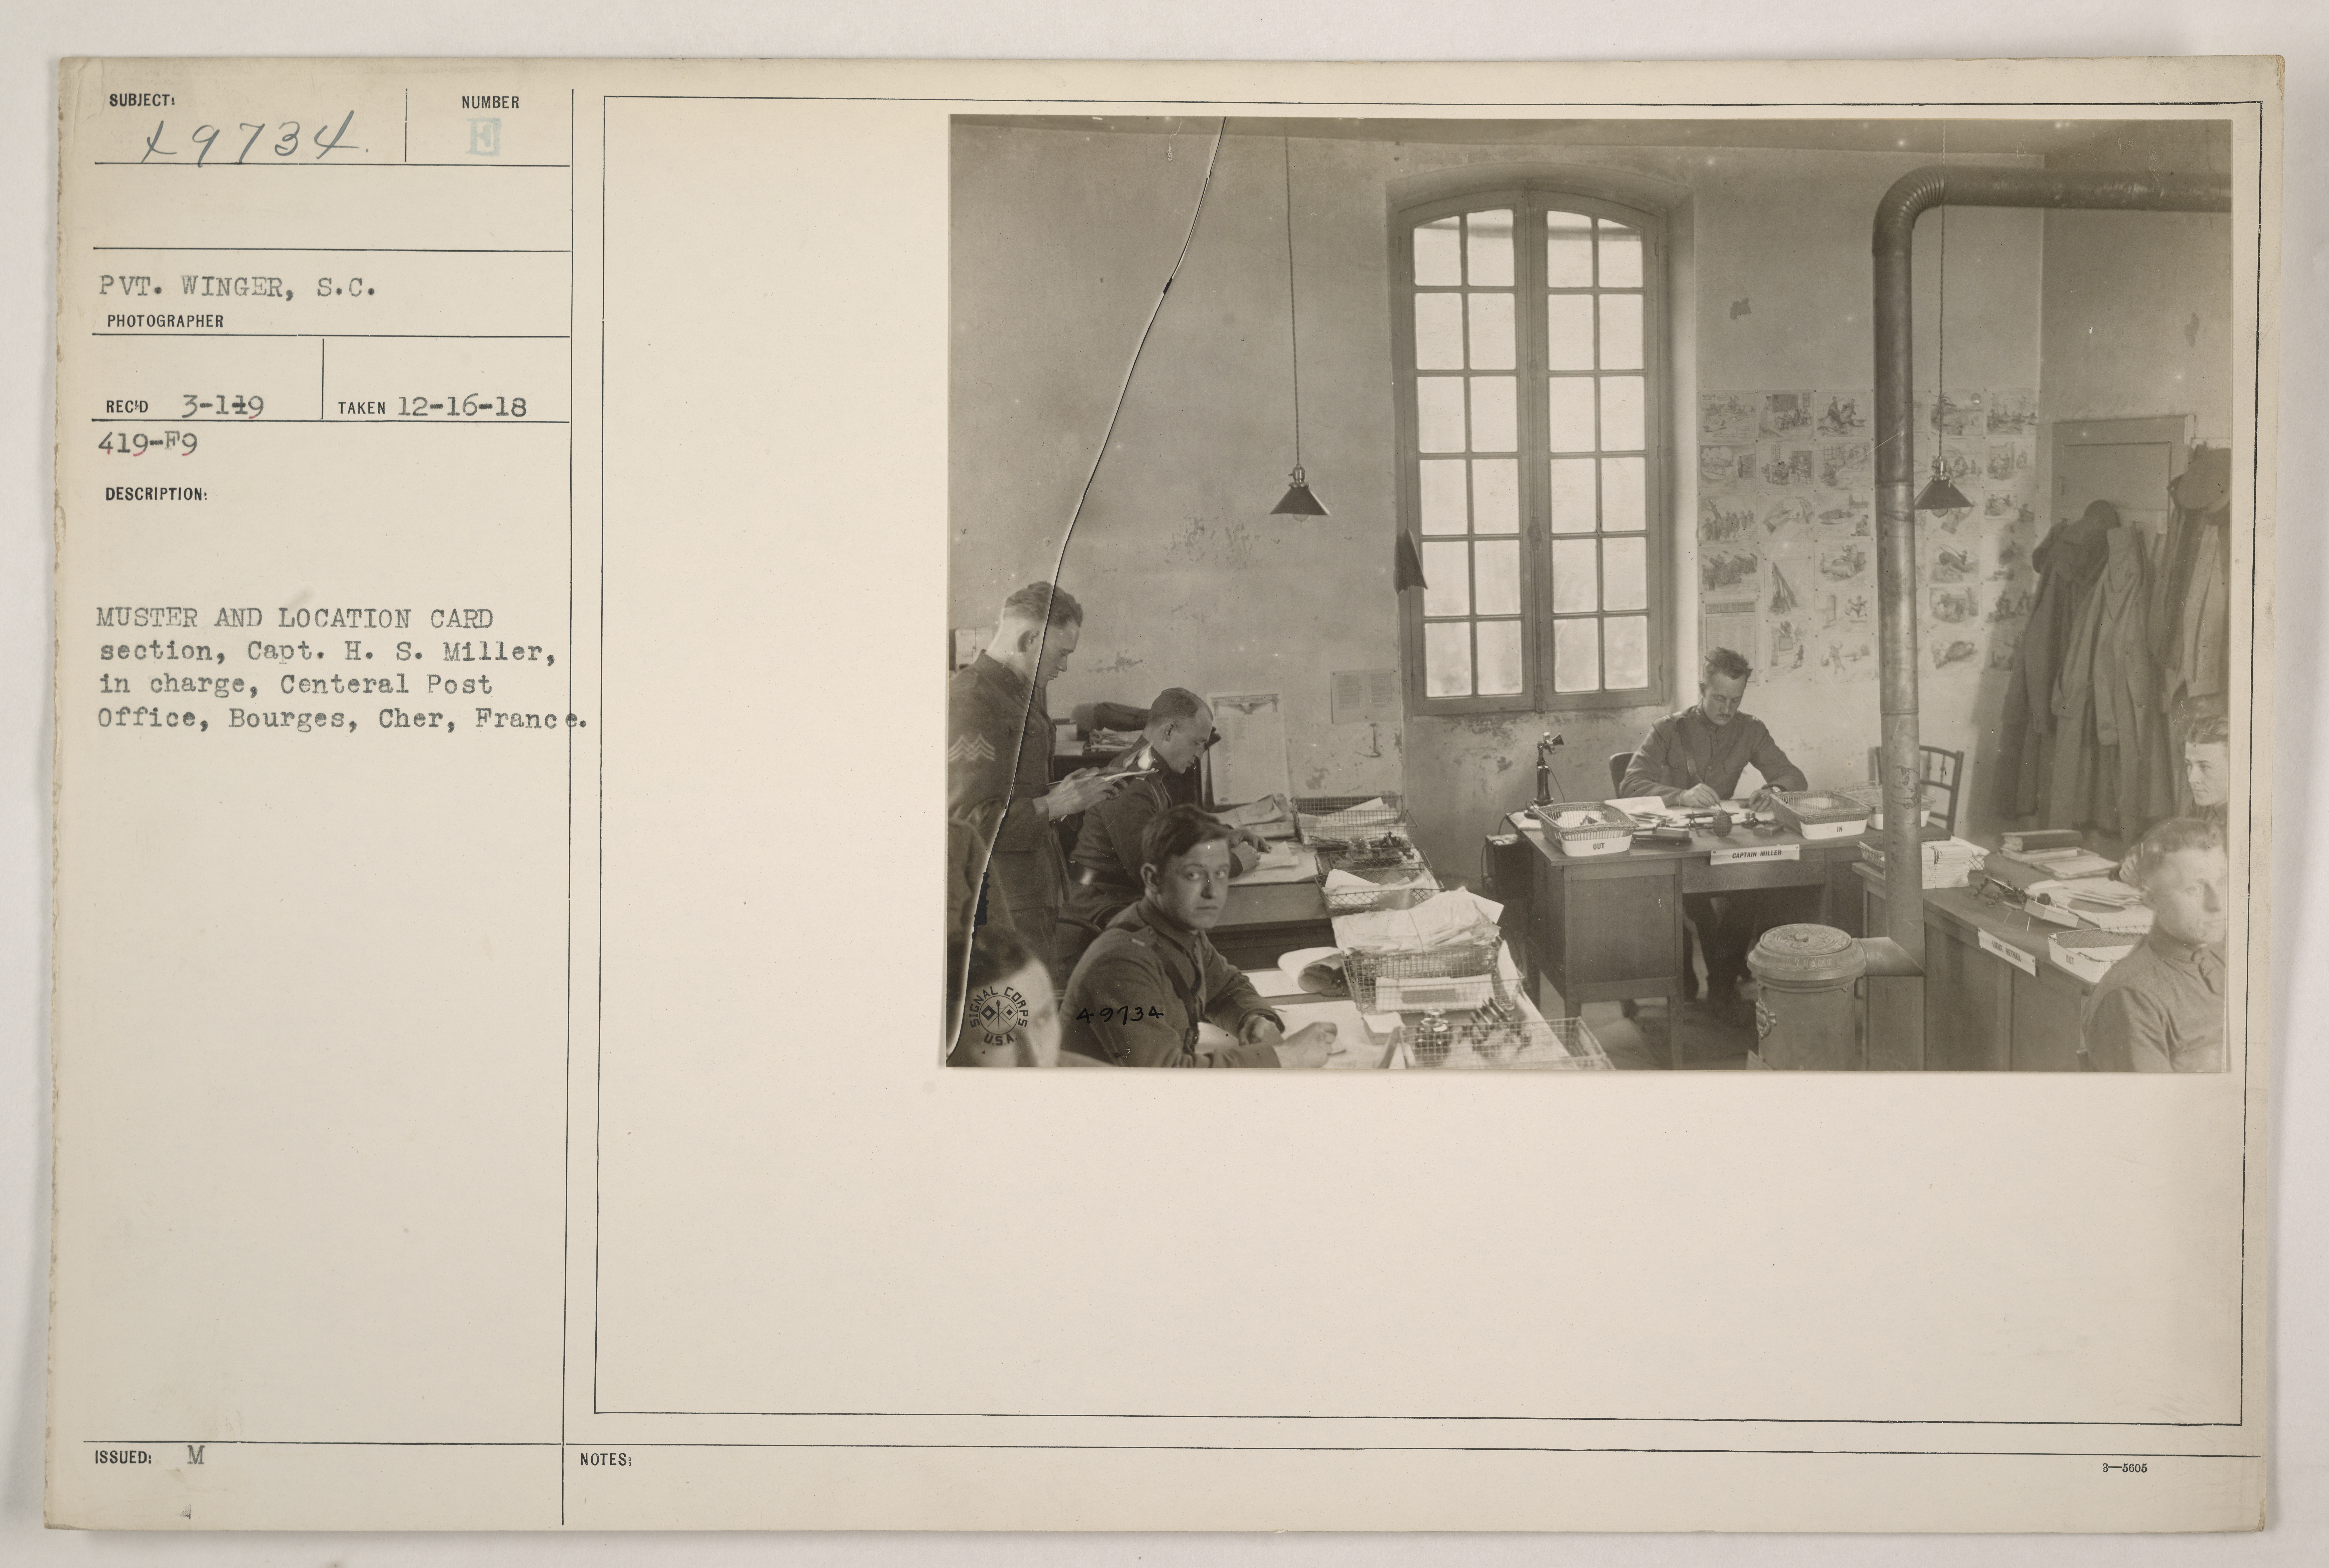 Muster and location card section, Capt. H.S. Miller in charge, Central Post Office, Bourges, Cher, France